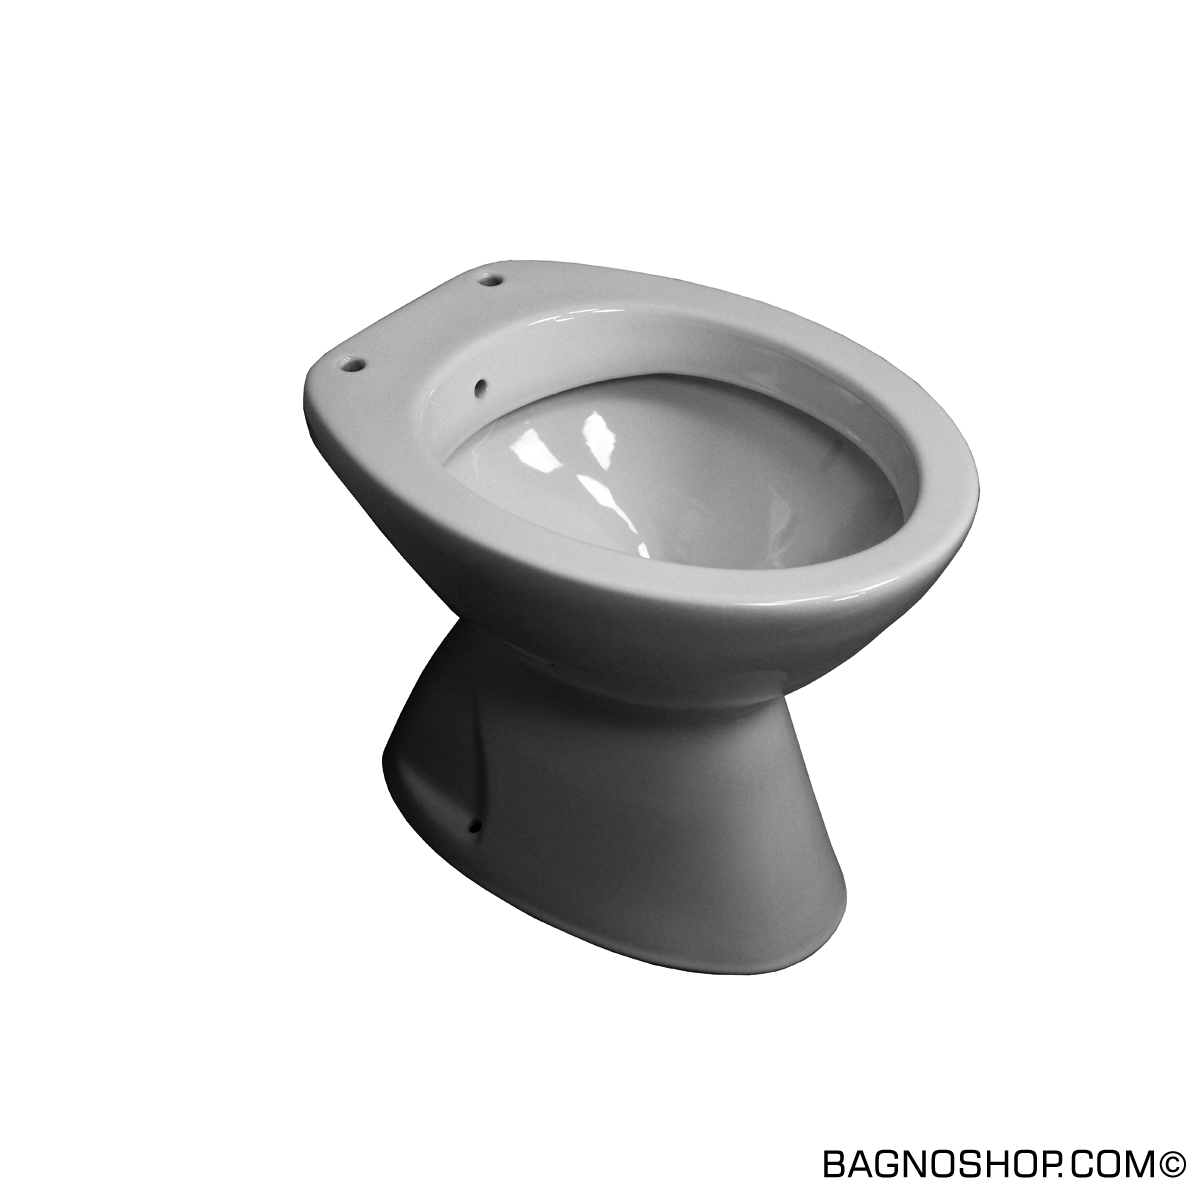 Water bidet integrato iseo for Wc bidet integrato